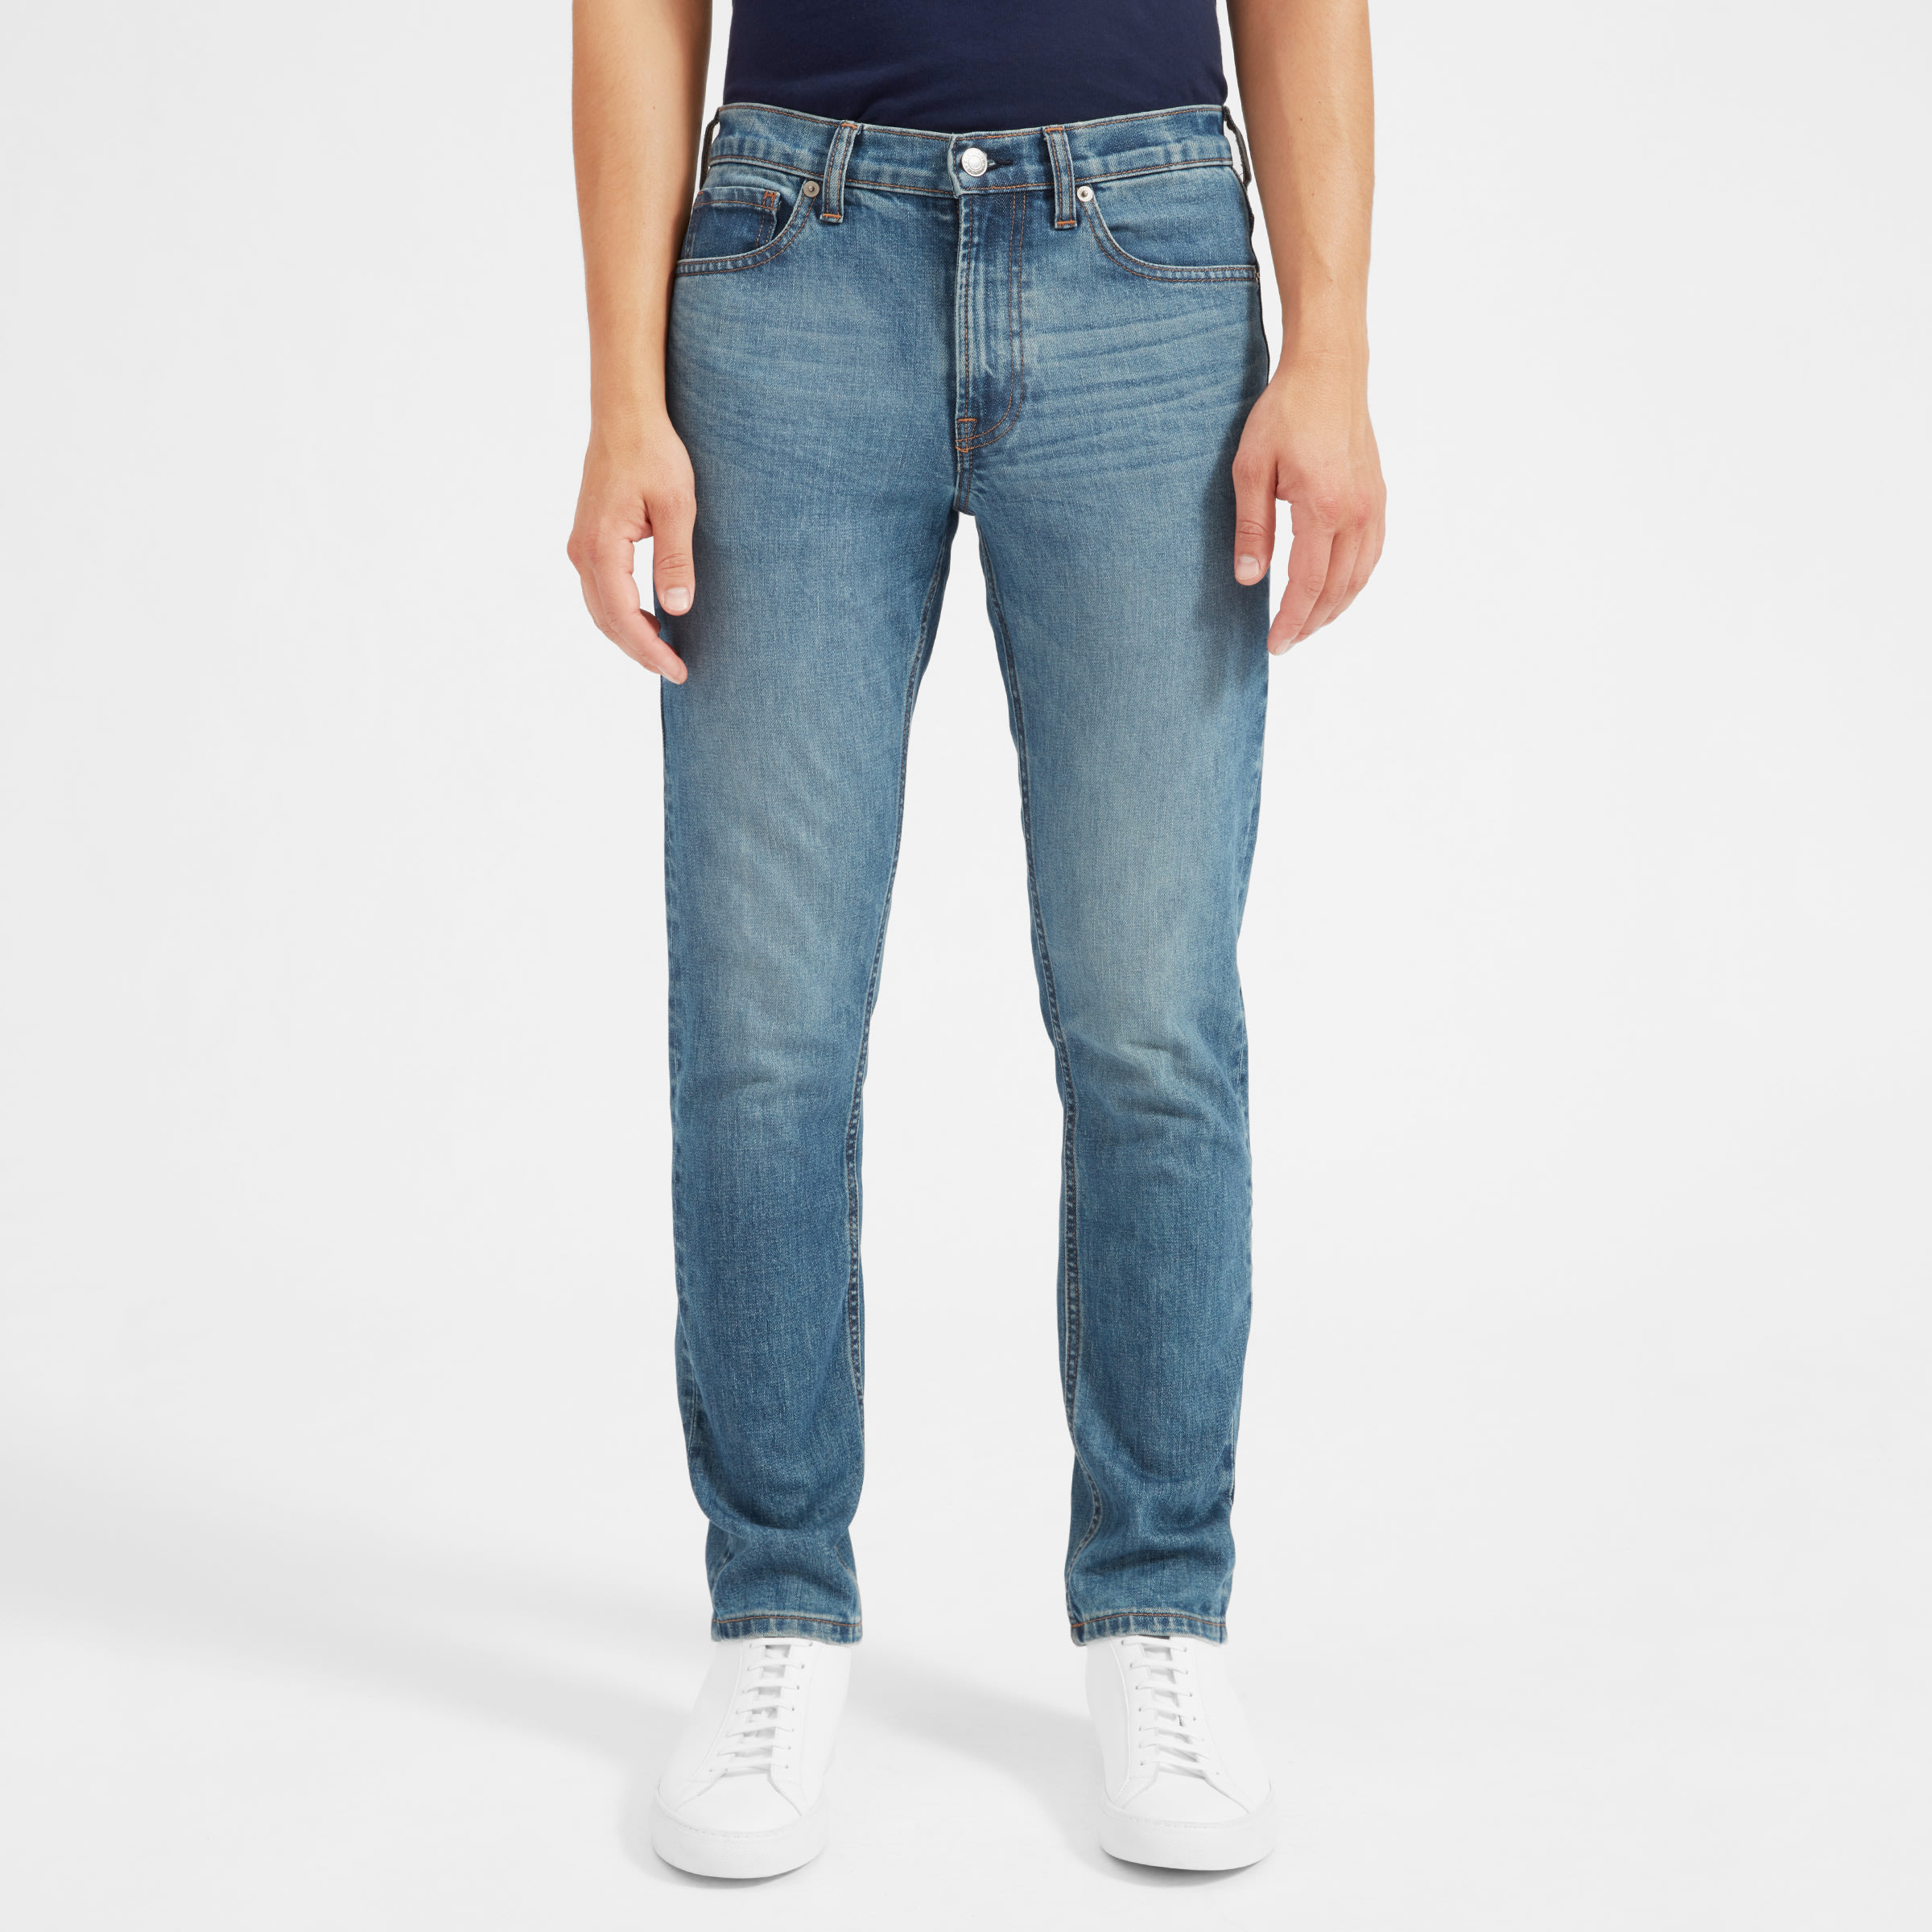 7c6d58d445 The Slim Fit Jean